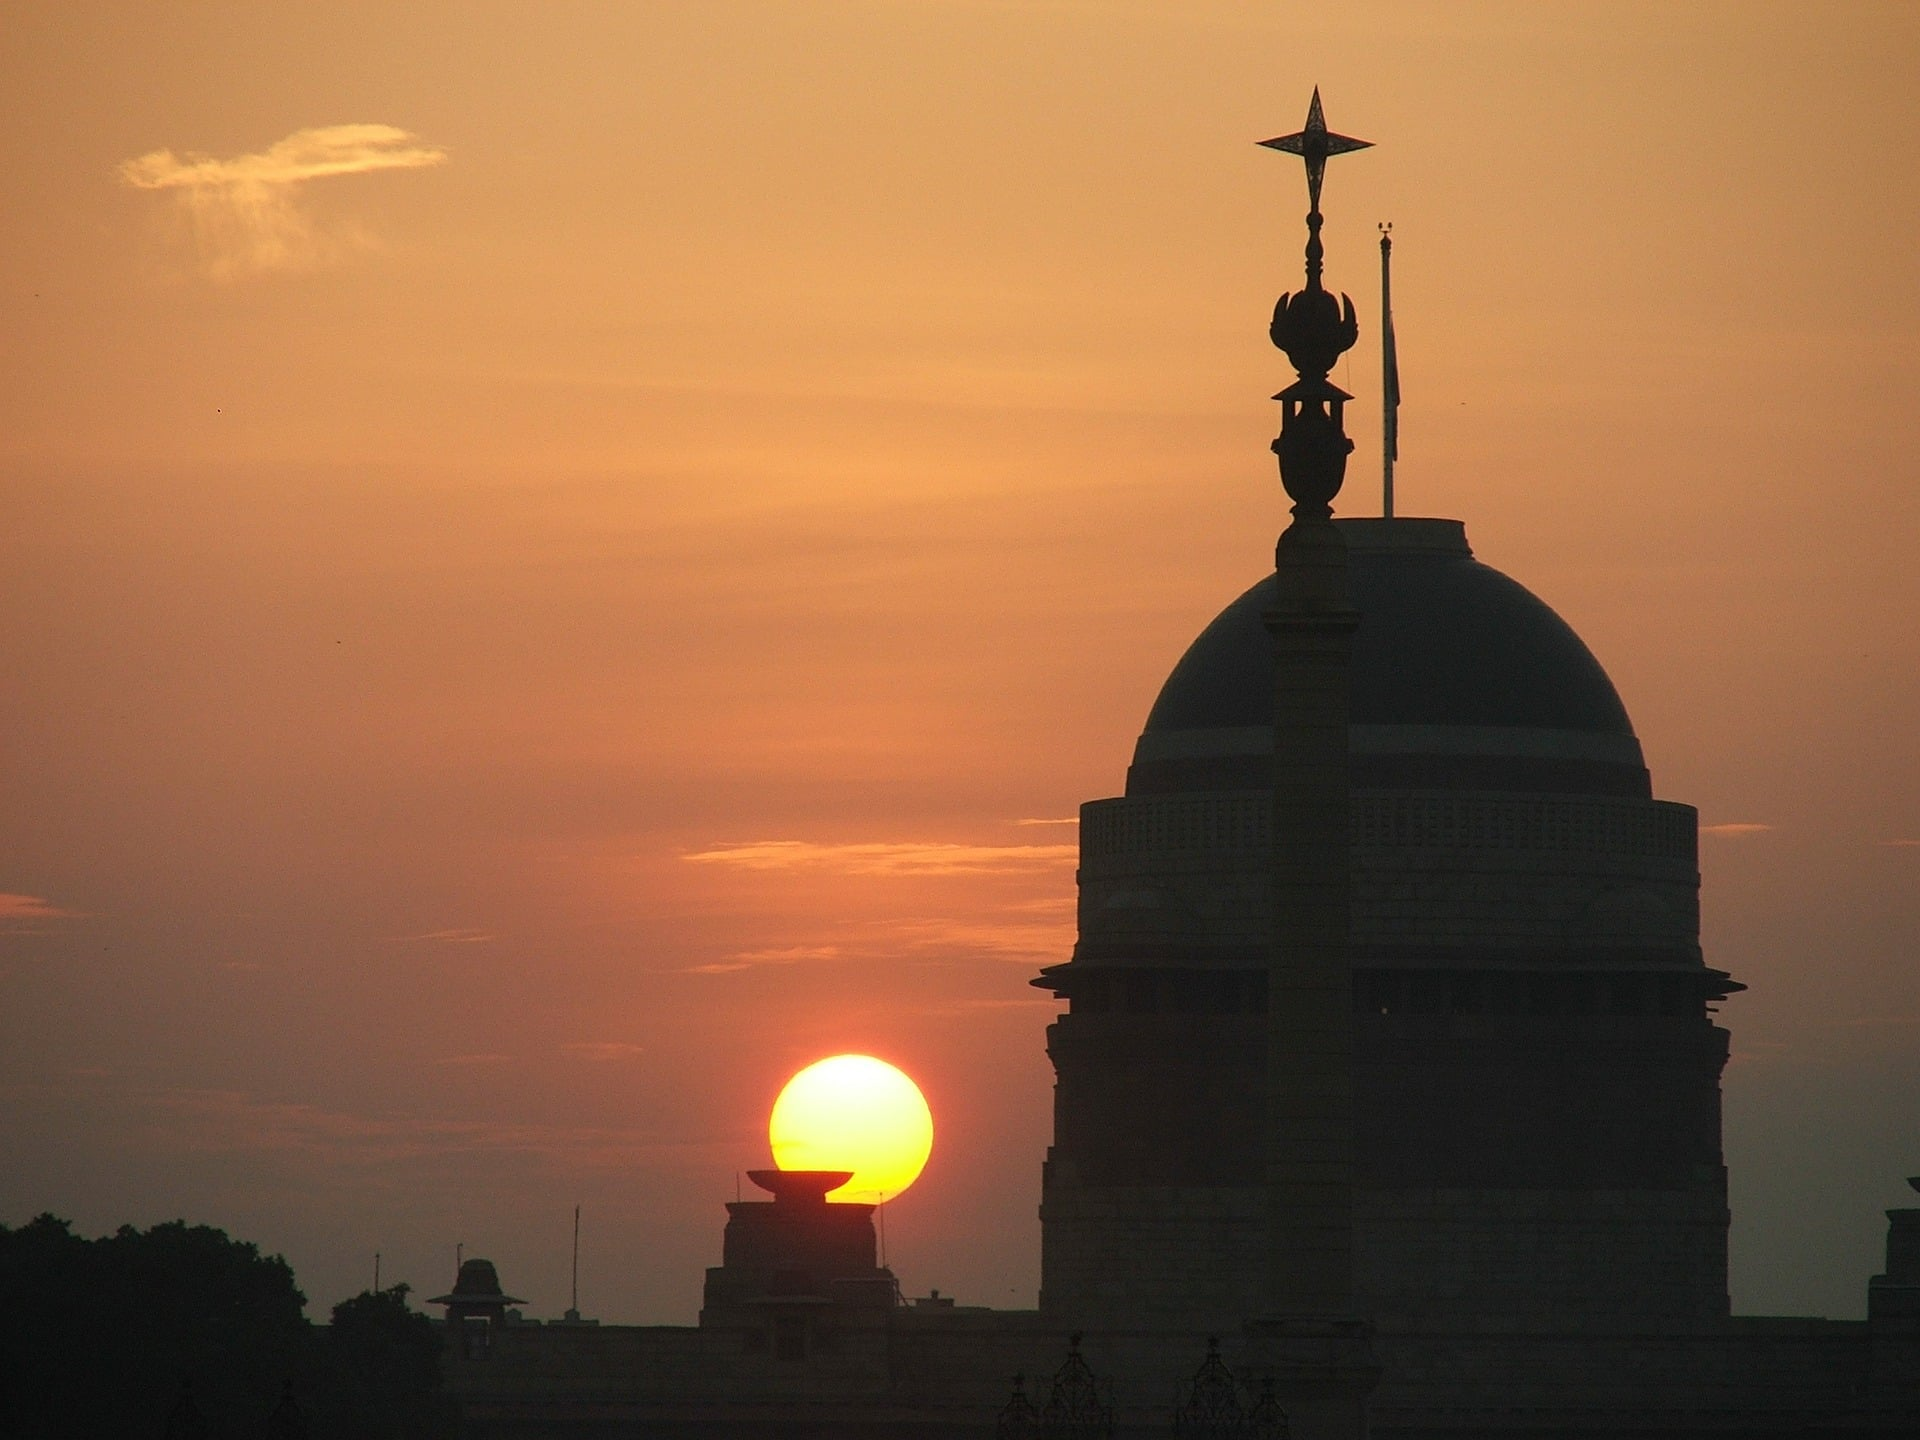 A-picture-of-rashtrapati-bhawan-in-delhi-at-sunset